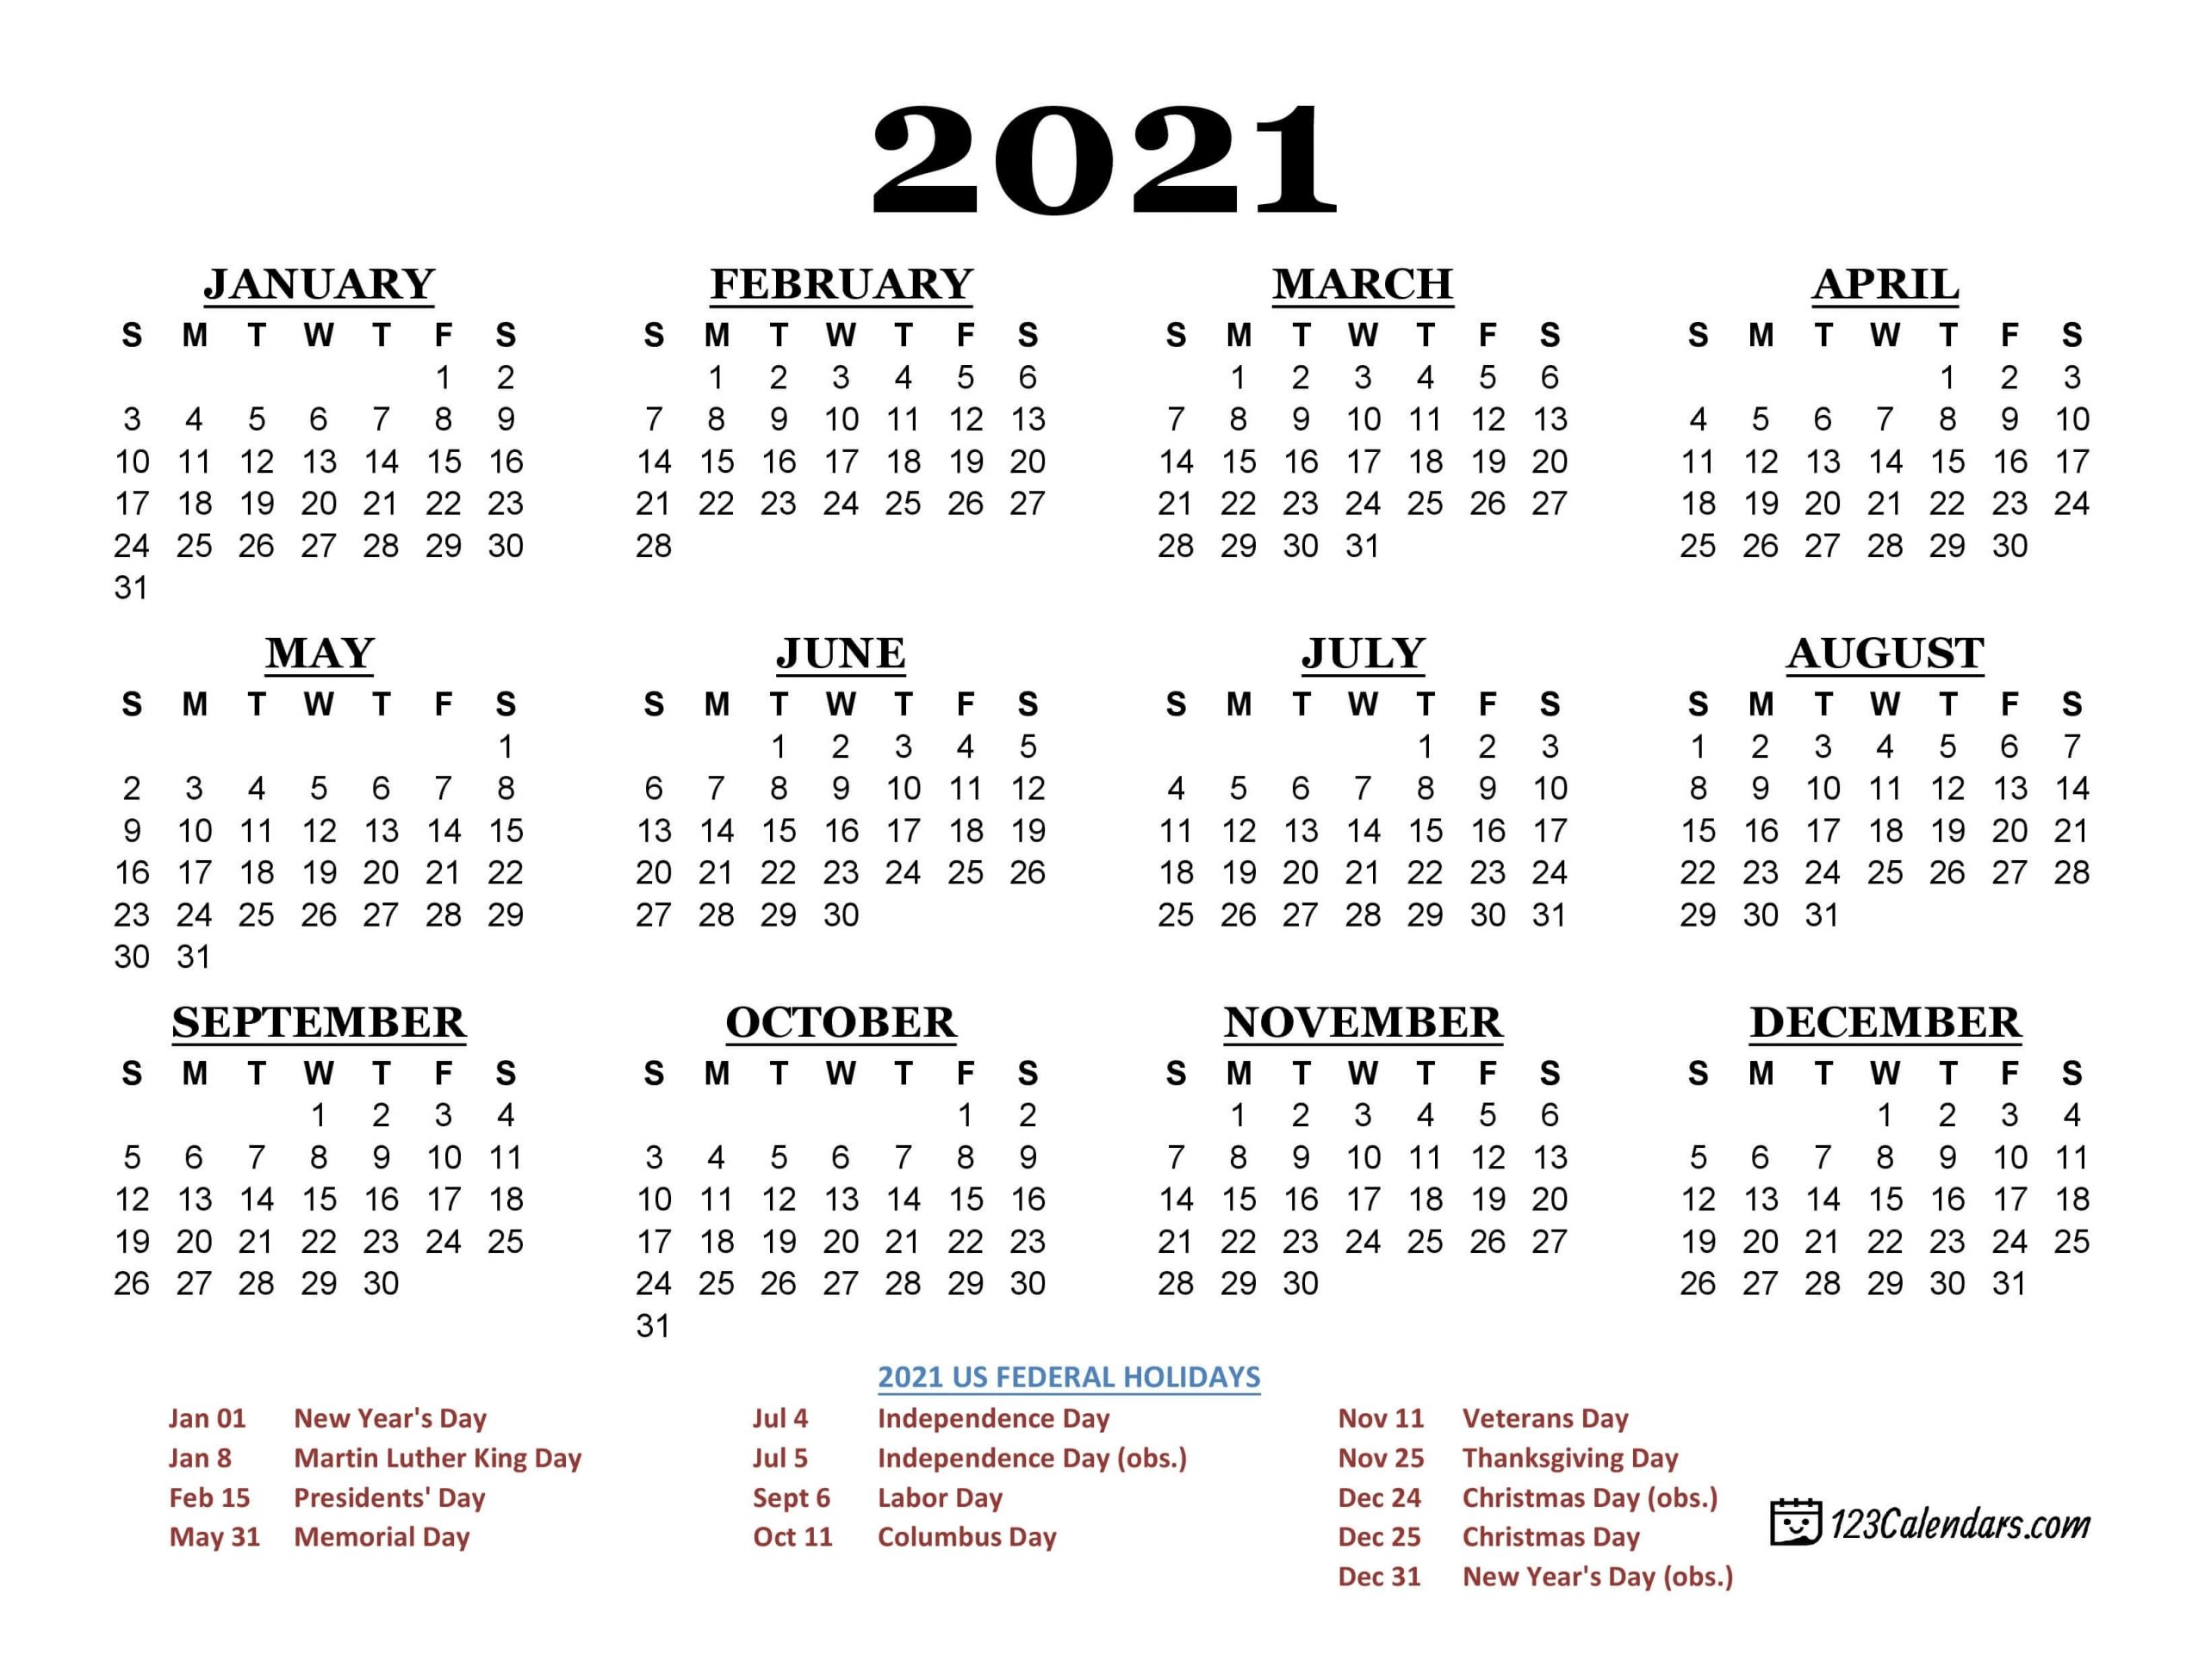 Get Print Calendar Year 2021 No Download